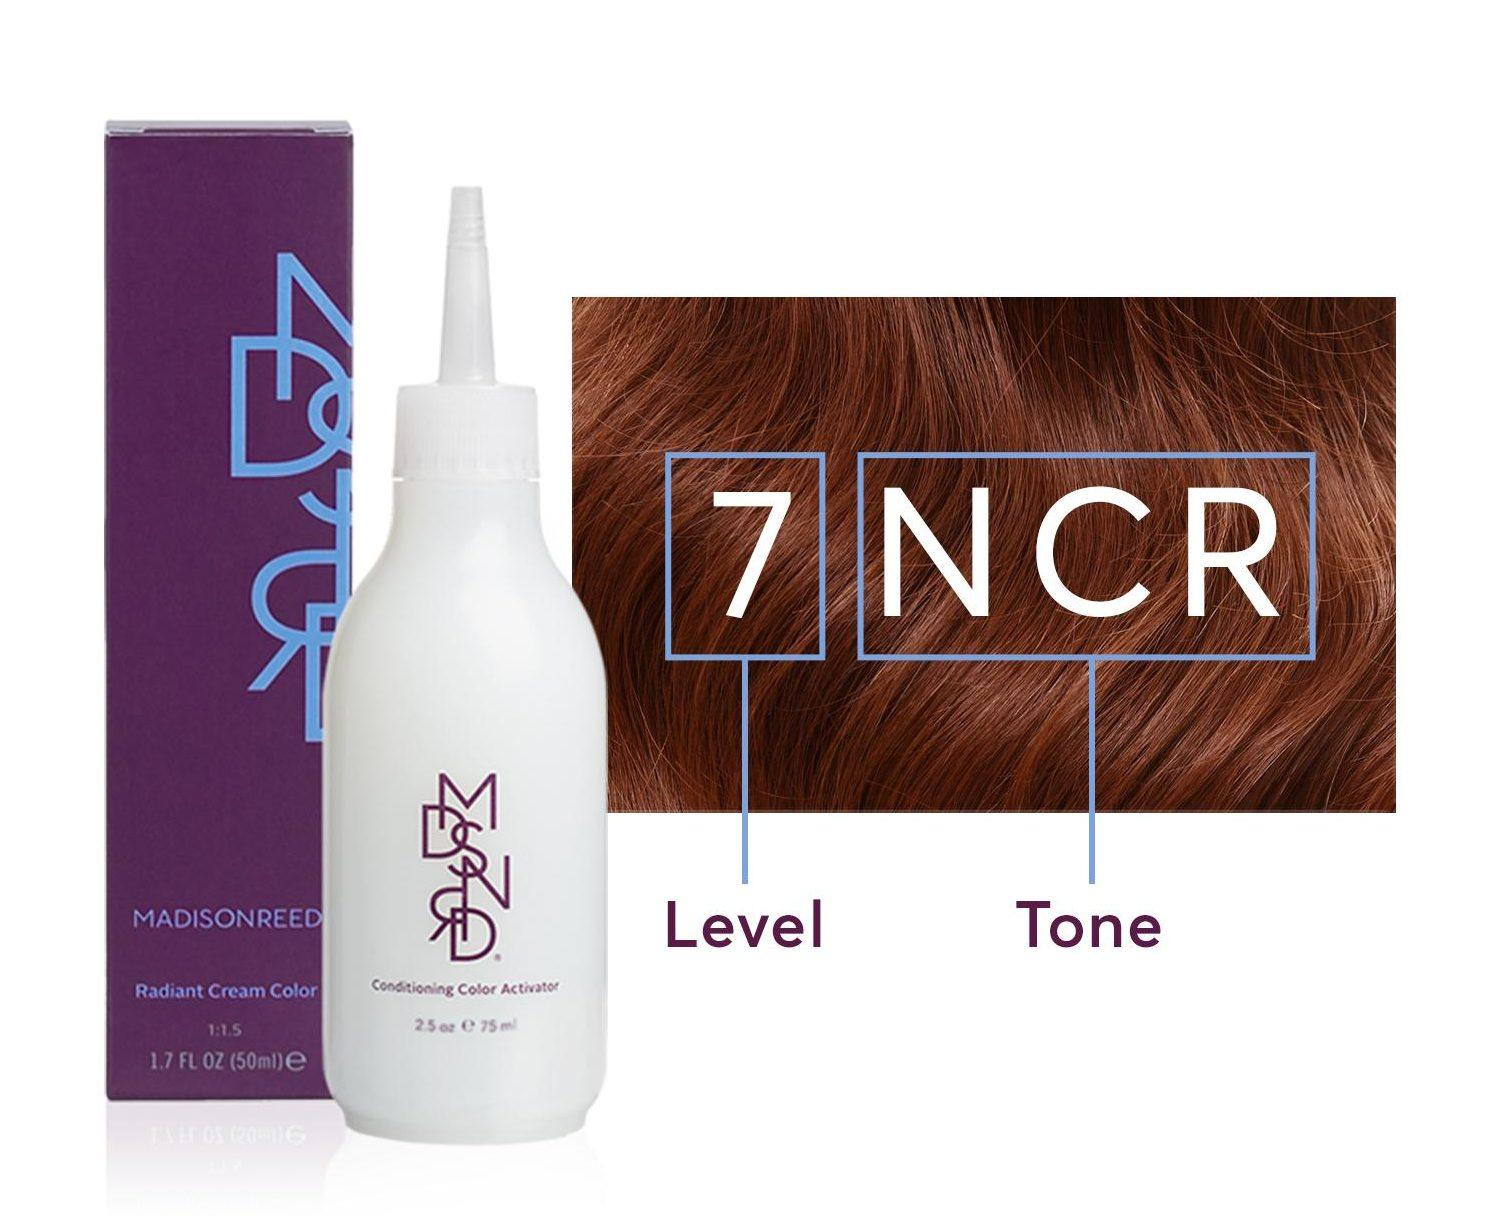 Madison Reed hair color box and activator with level and tone information